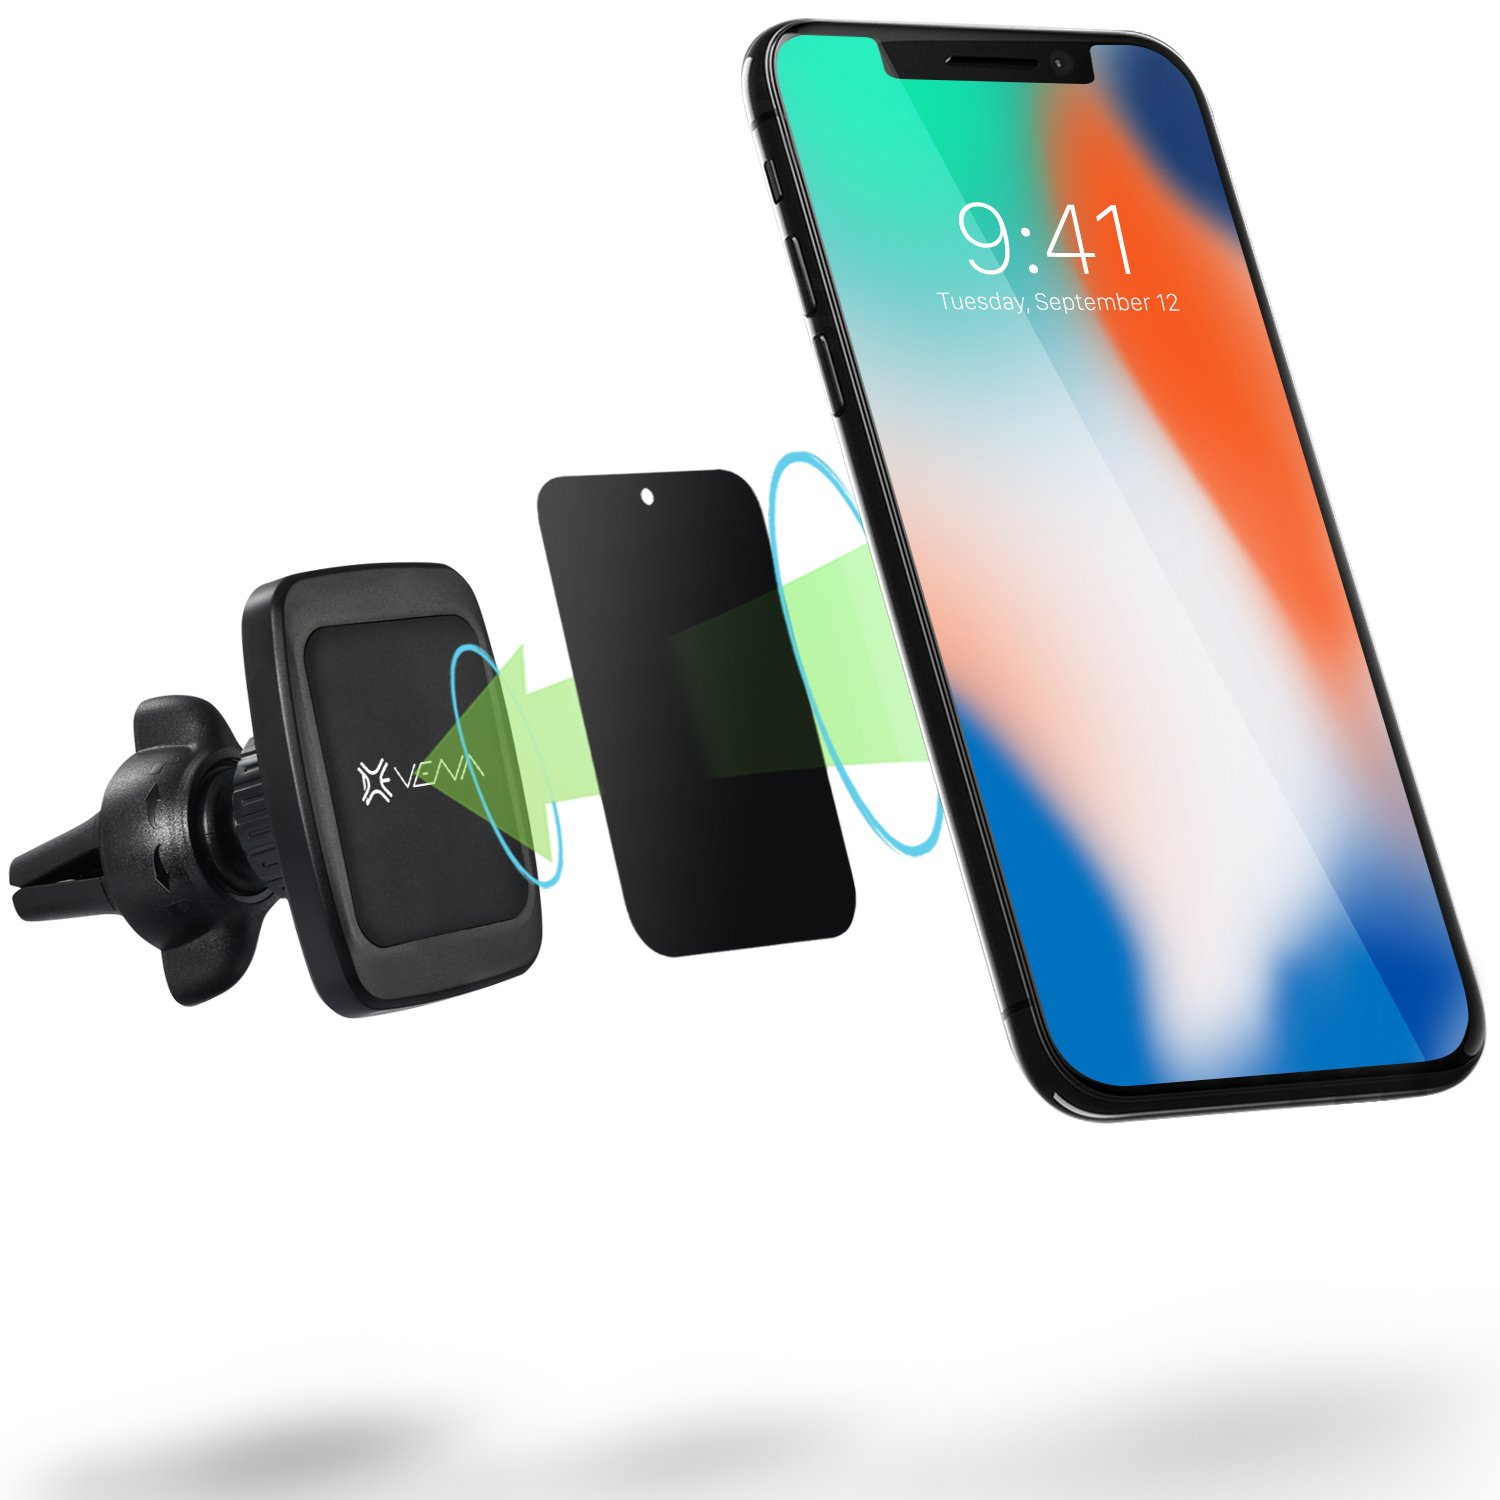 Car Phone Mount, Vena [6Netic] Magnetic Cellphone Car Mount, Universal Air Vent Holder for iPhone XR/XS/XS MAX/X/8 Plus/8, Galaxy Note 9/8/S8 Plus/S8/S9 S9 Plus, Google Pixel 3/3 XL/2/2 XL, LG V30/G6, HTC, Motorola G6/G6 Play/G6 Plus- Black VN0017